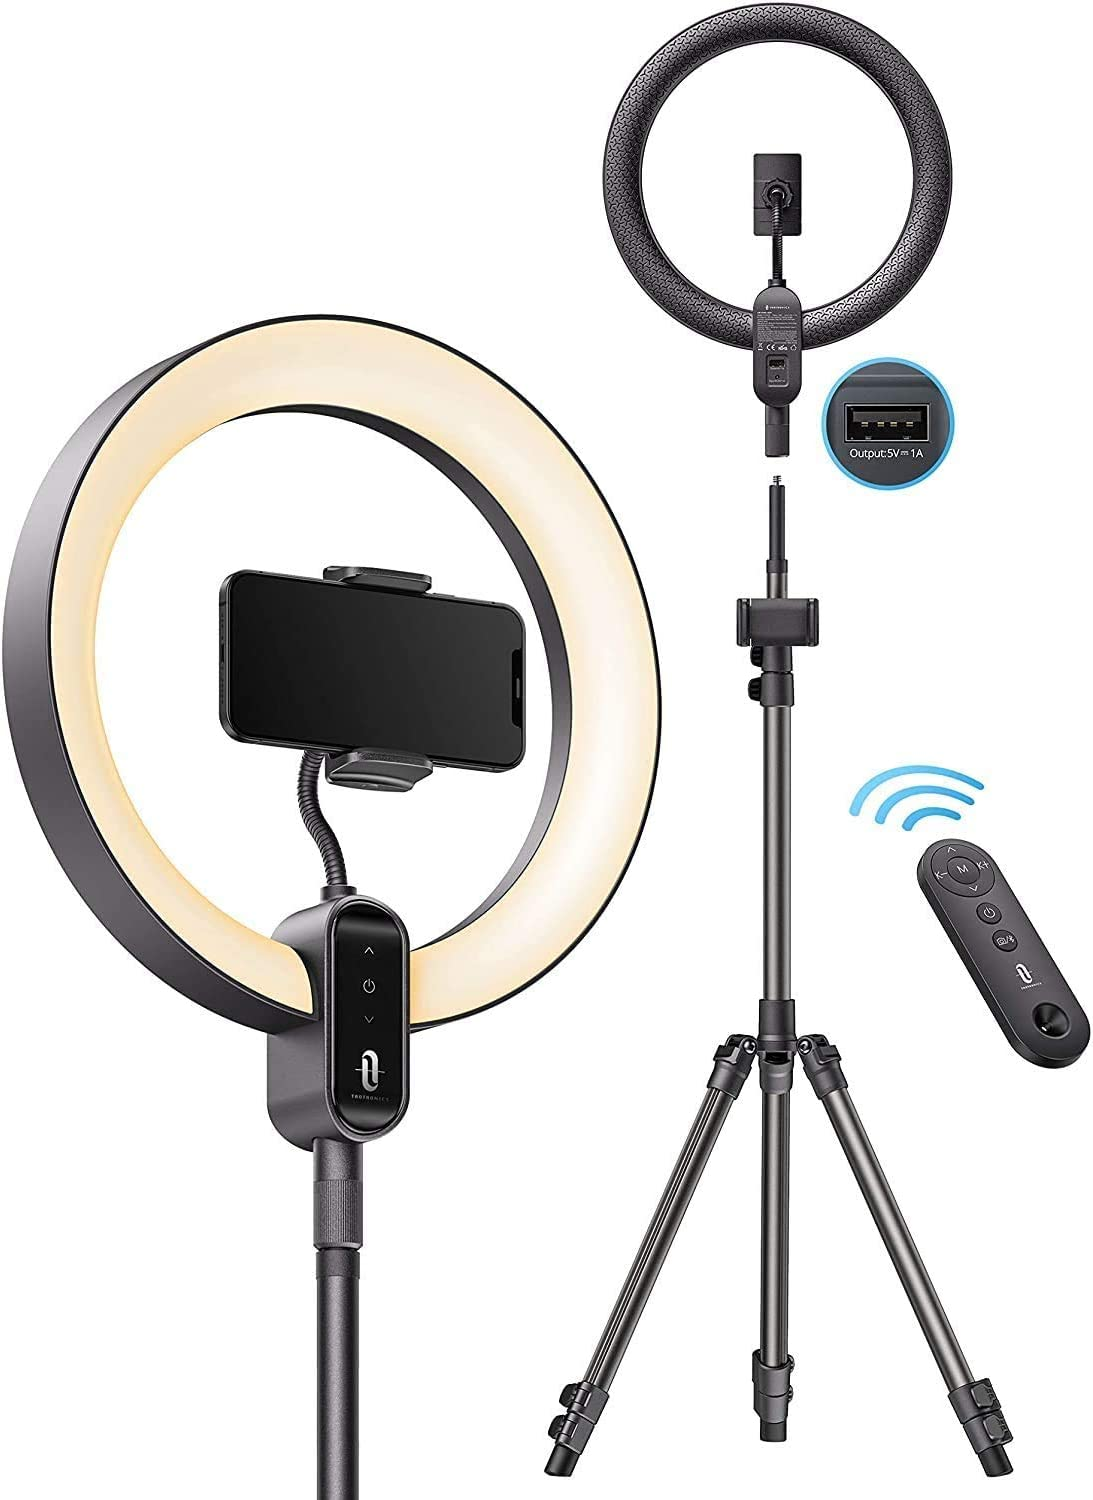 TaoTronics Ring Light CL025, 12'' Ring Light with 78'' Tripod Stand, Dimmable LED Light Outer 24W 6500K, USB Charging Port, Carrying Bag, Light Remote Control for Zoom Call Meeting Live Stream Video